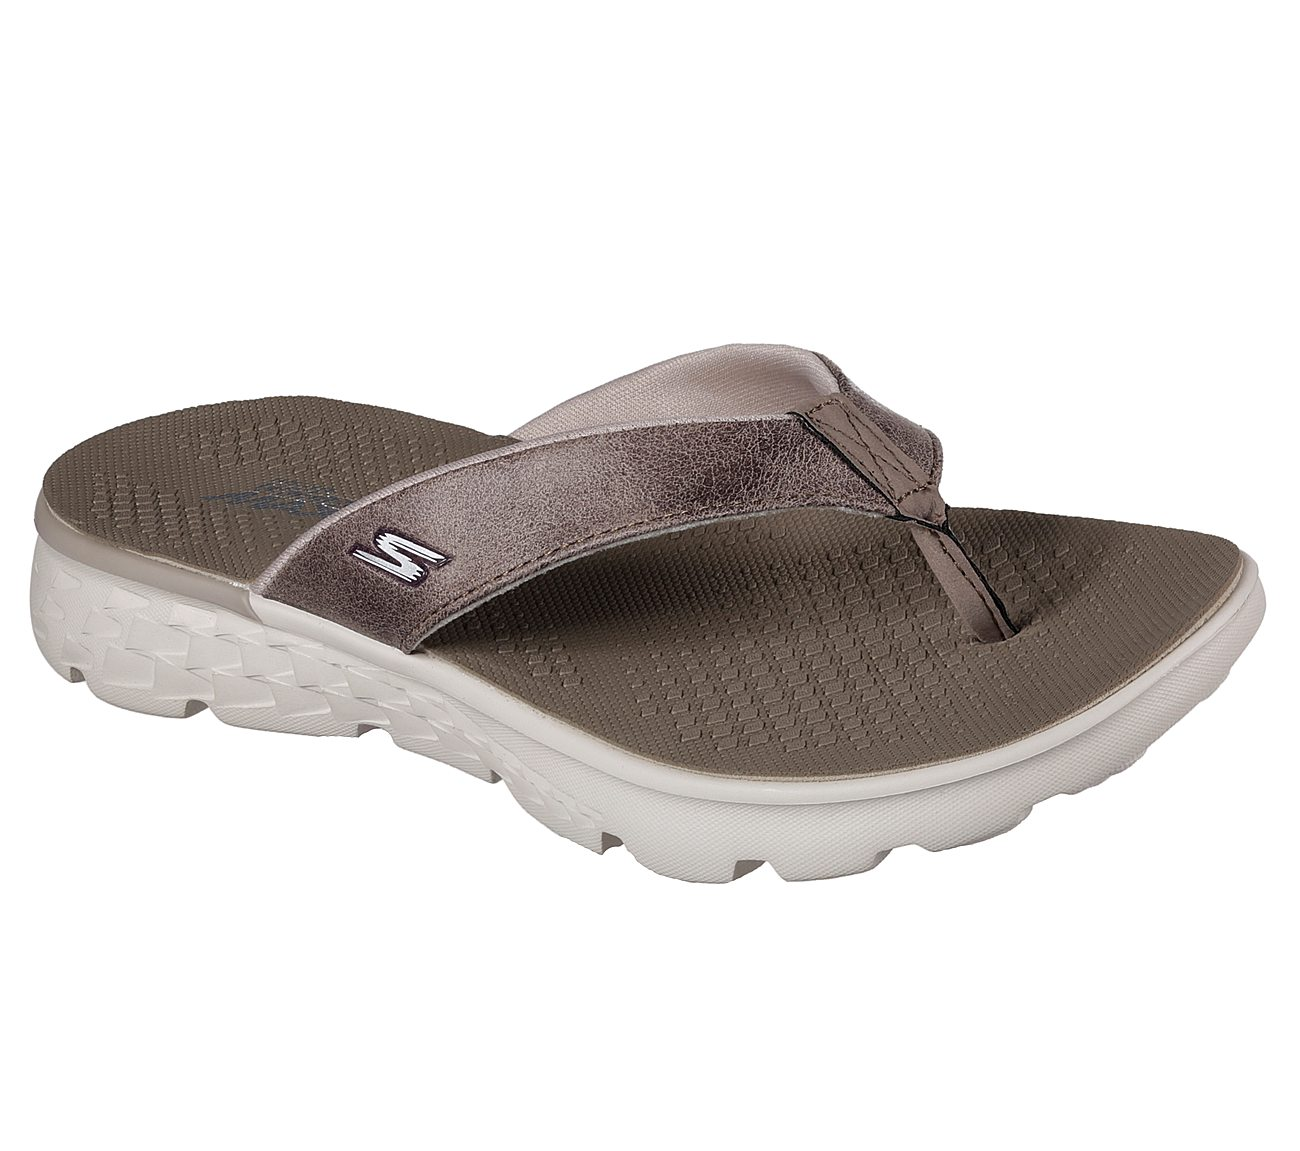 a4e798962cee Buy SKECHERS Skechers On the GO 400 - Essence Skechers Performance ...